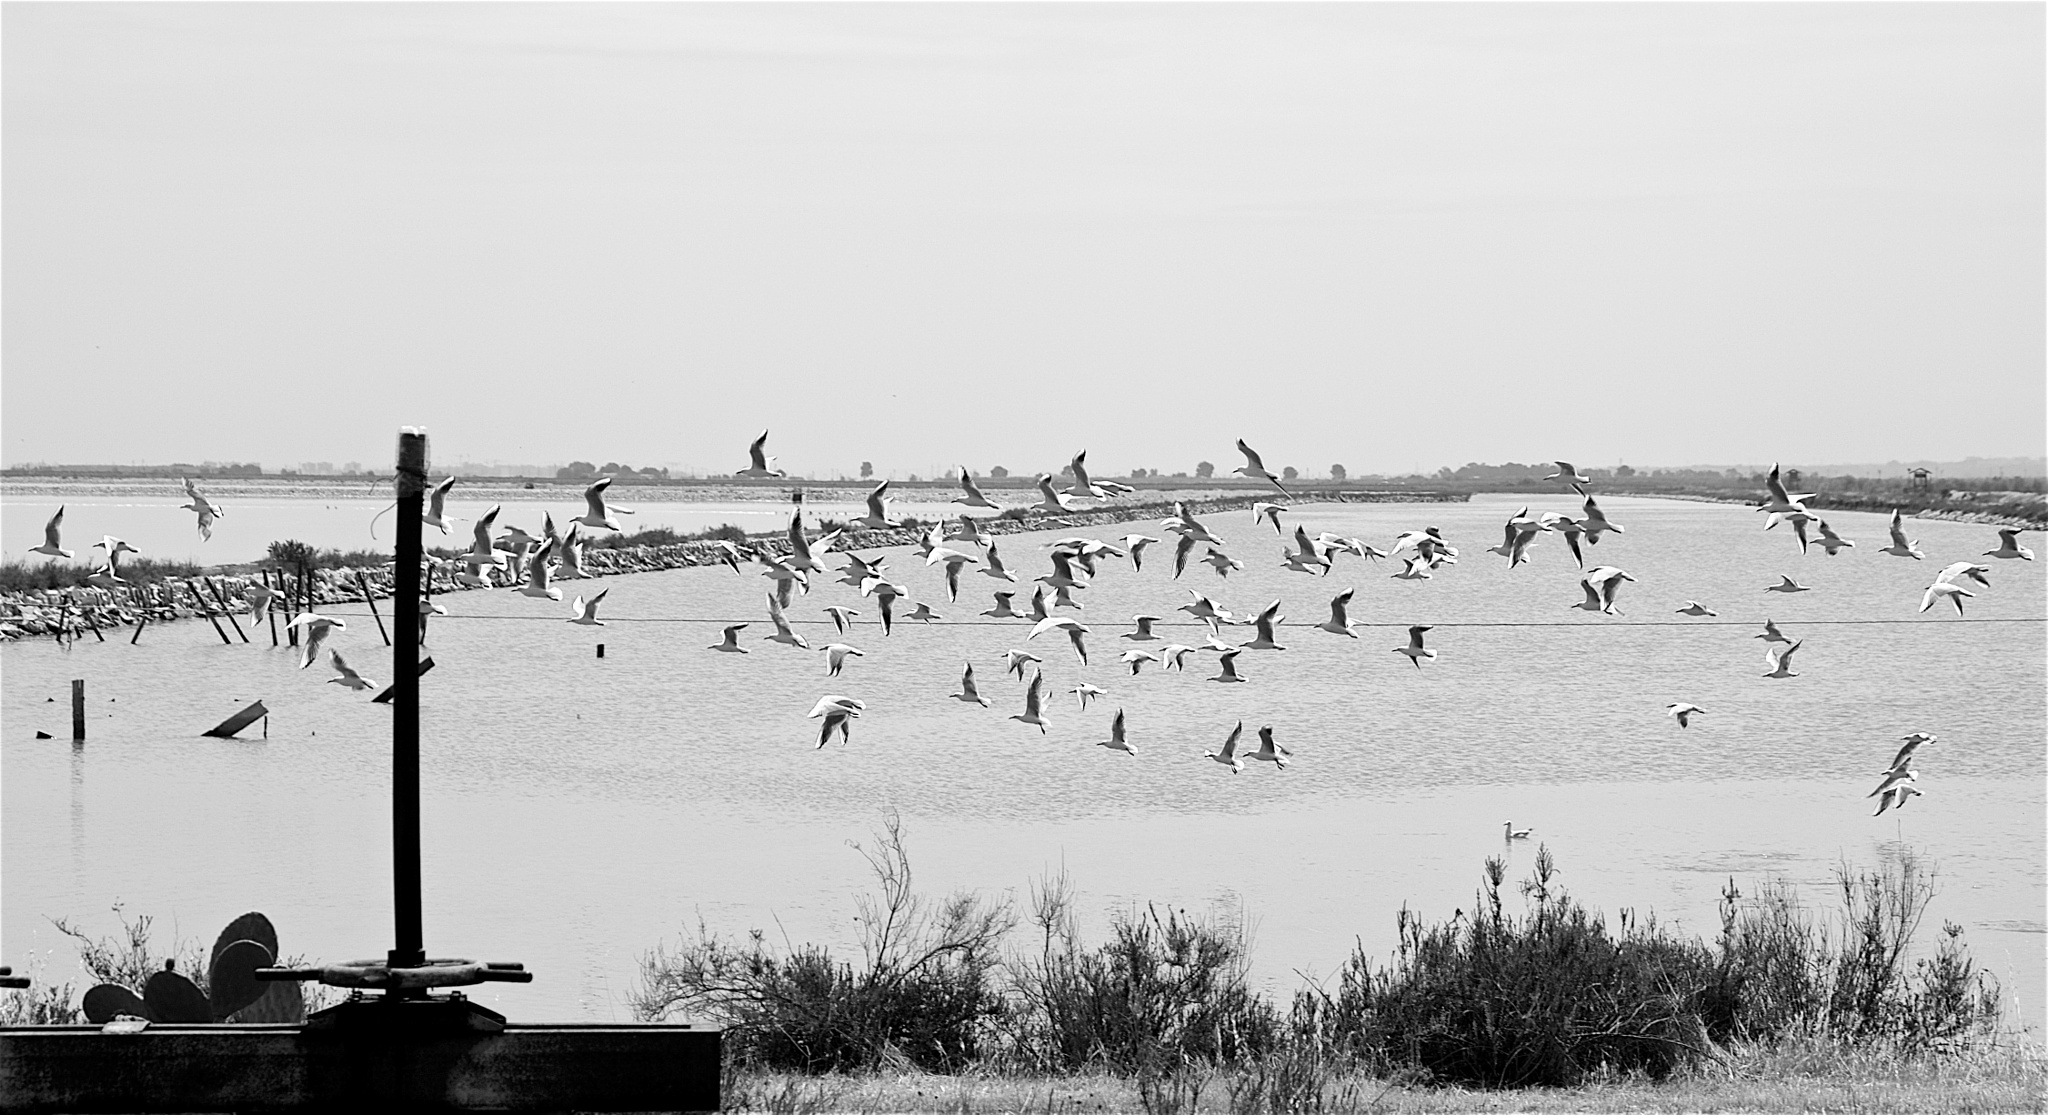 Seagulls by paolotomaselloct